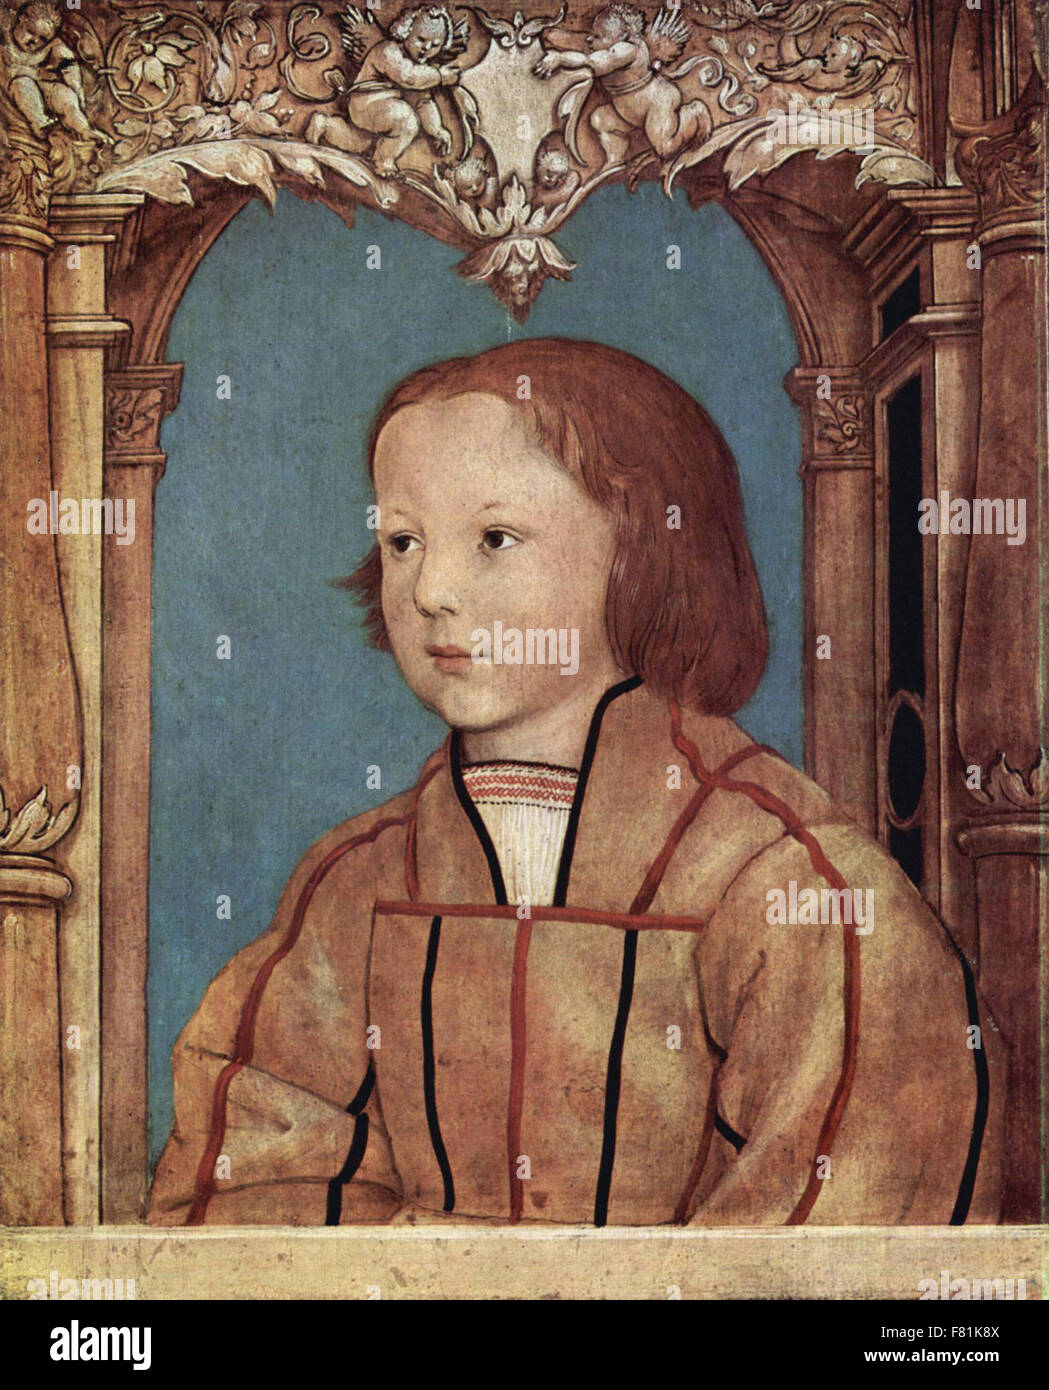 Hans Holbein the Younger - Ambrosius - Stock Image